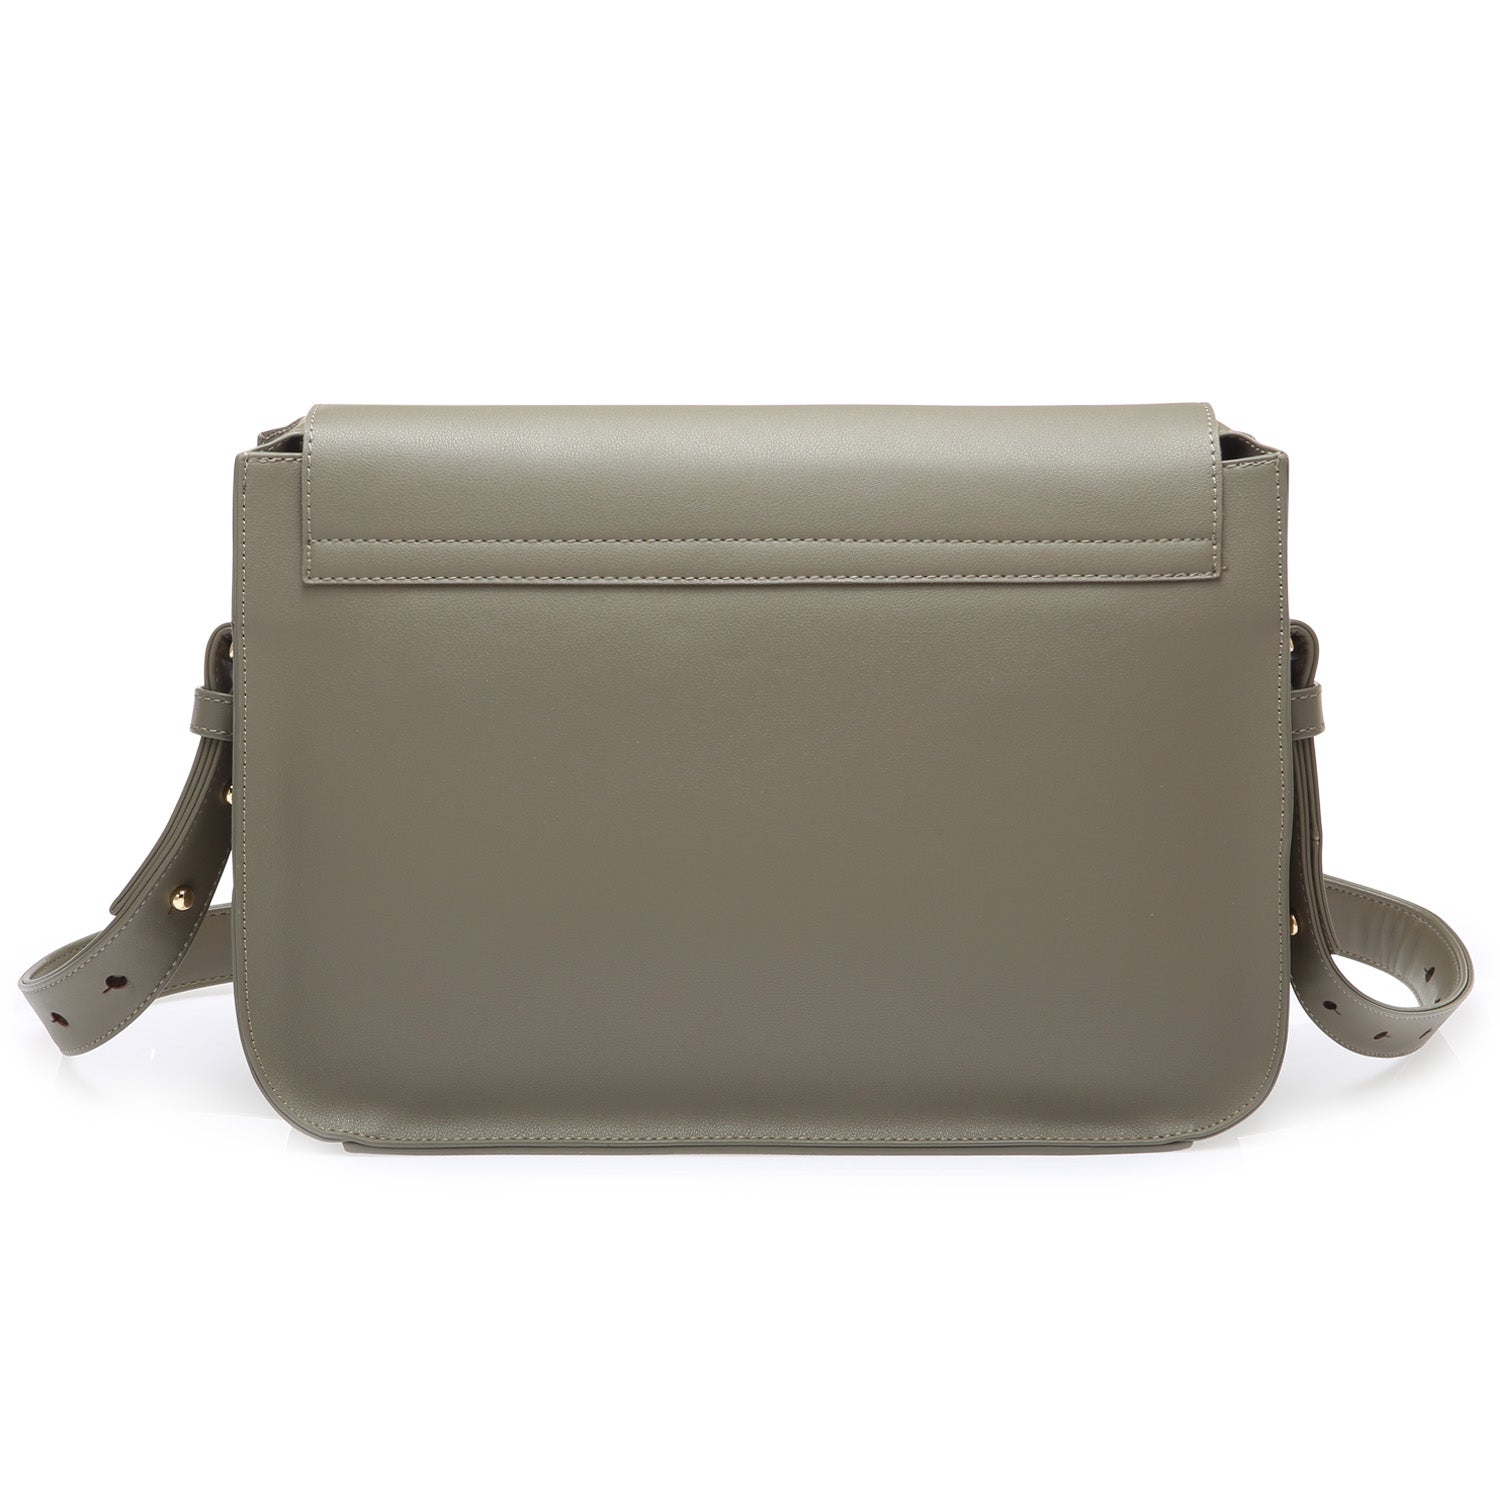 ESATCH L - OLIVE